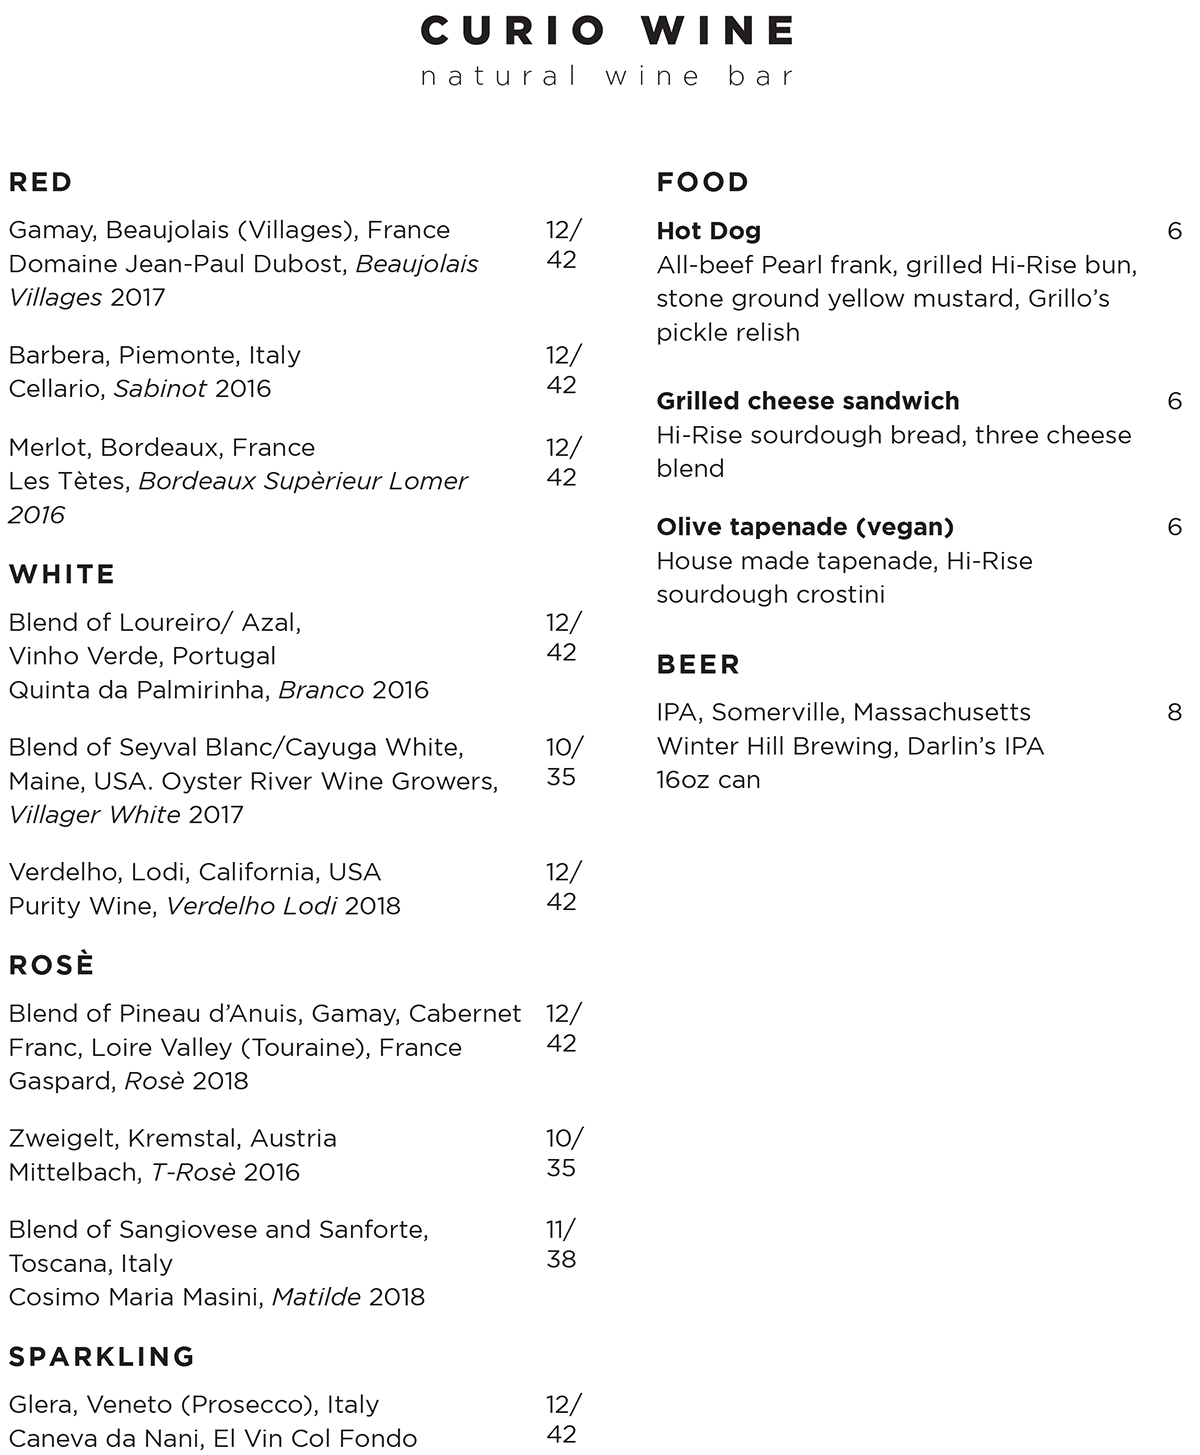 Curio Wine Bar opening menu